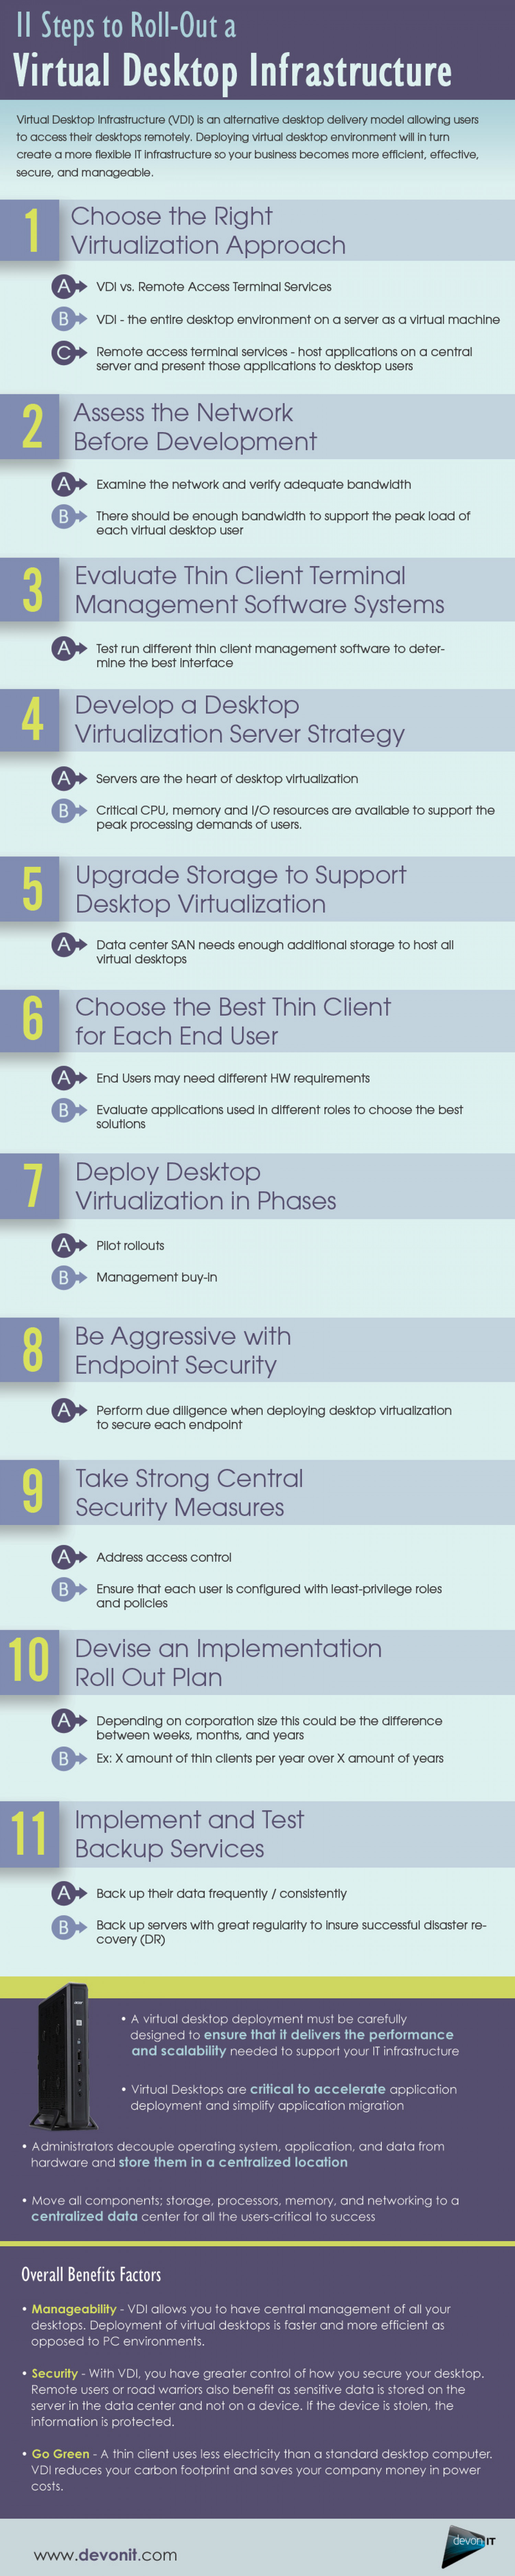 11 Steps to Roll-Out a Virtual Desktop Infrastructure Infographic